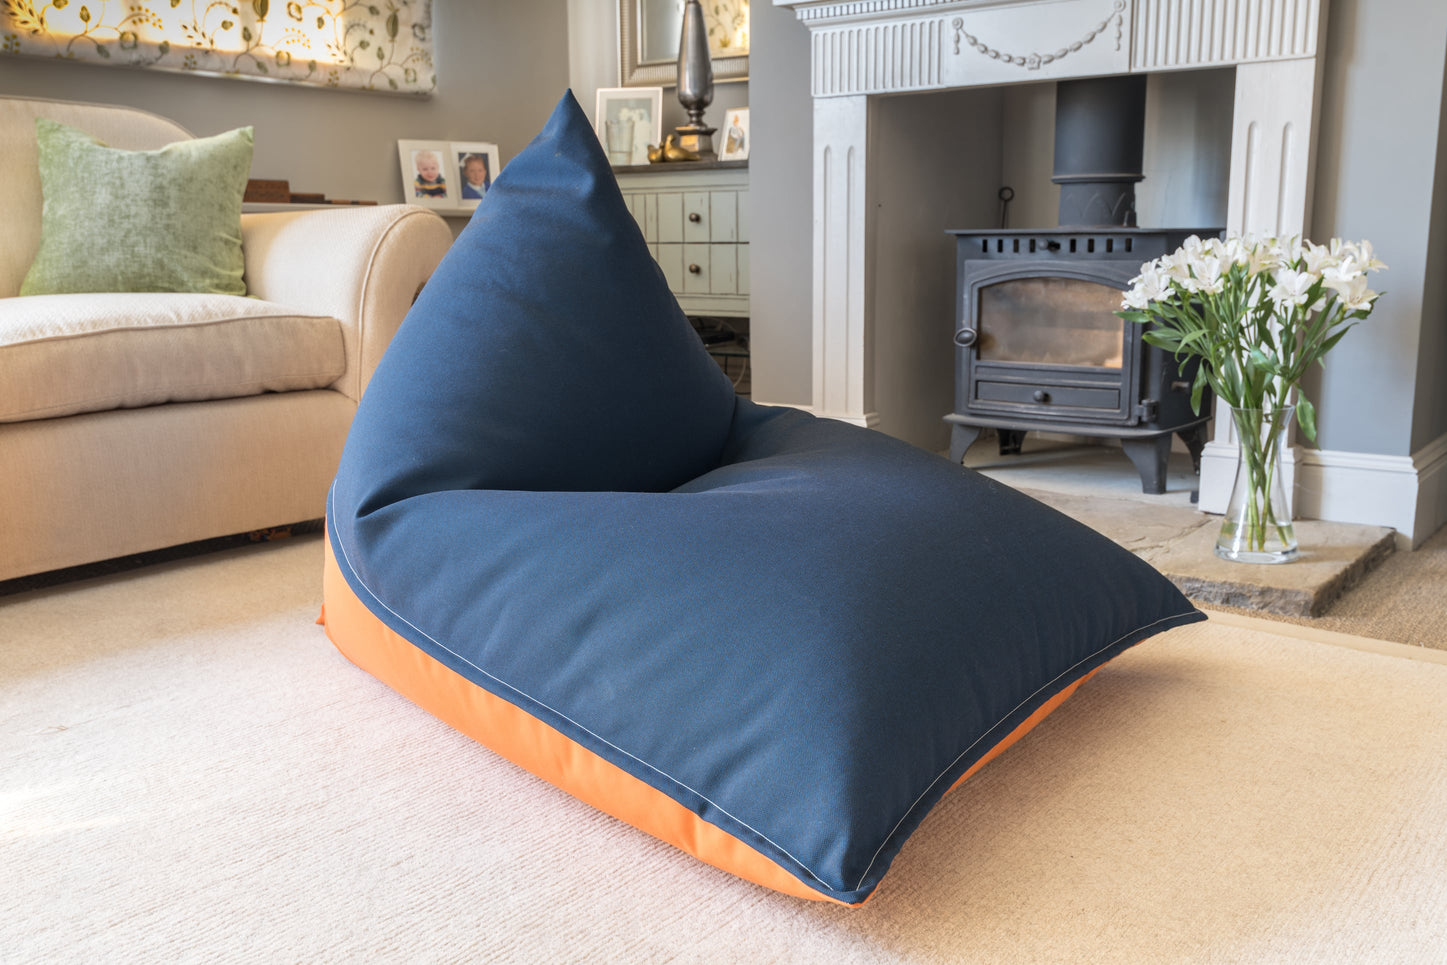 Armadillo Sun bean bag lounger in orange and navy blue fabric indoors by fireplace